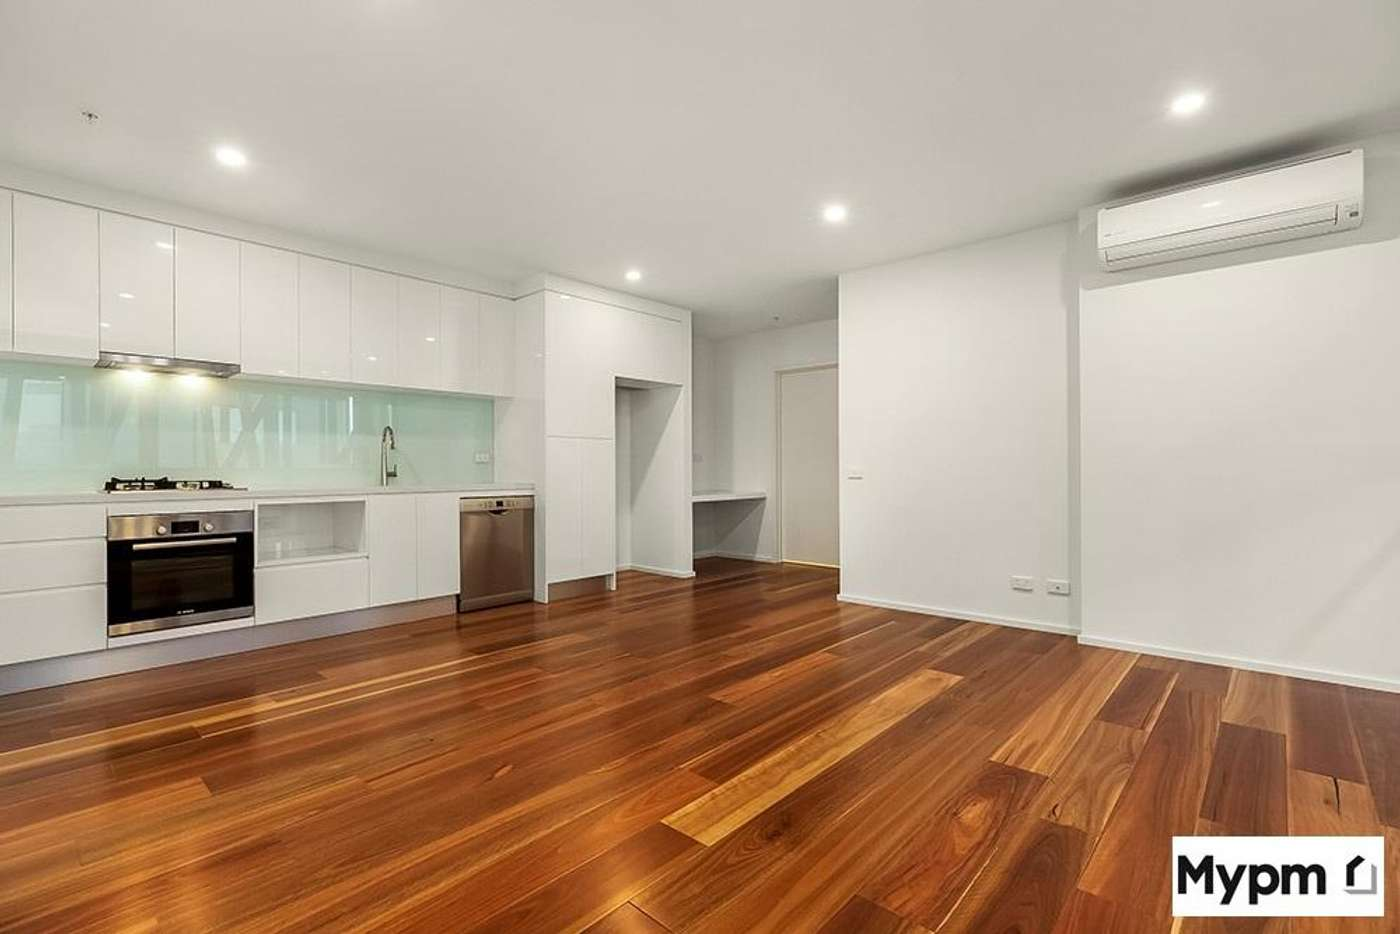 Main view of Homely apartment listing, 101/98 Nicholson Street, Brunswick East VIC 3057